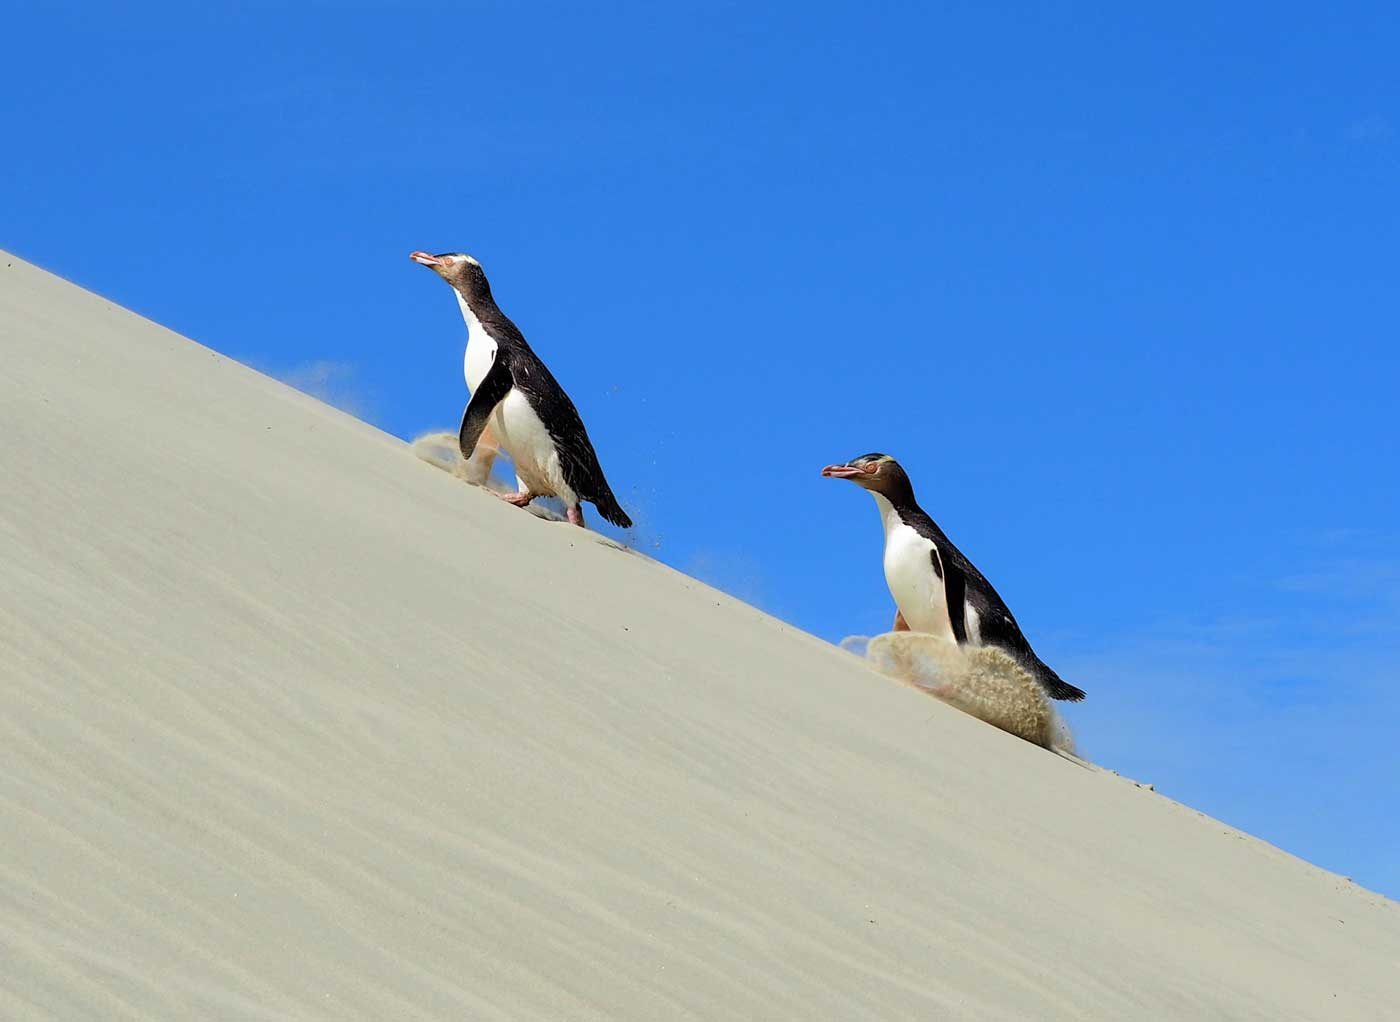 Yellow-eyed penguins hiking on the sand dune in Dunedin.